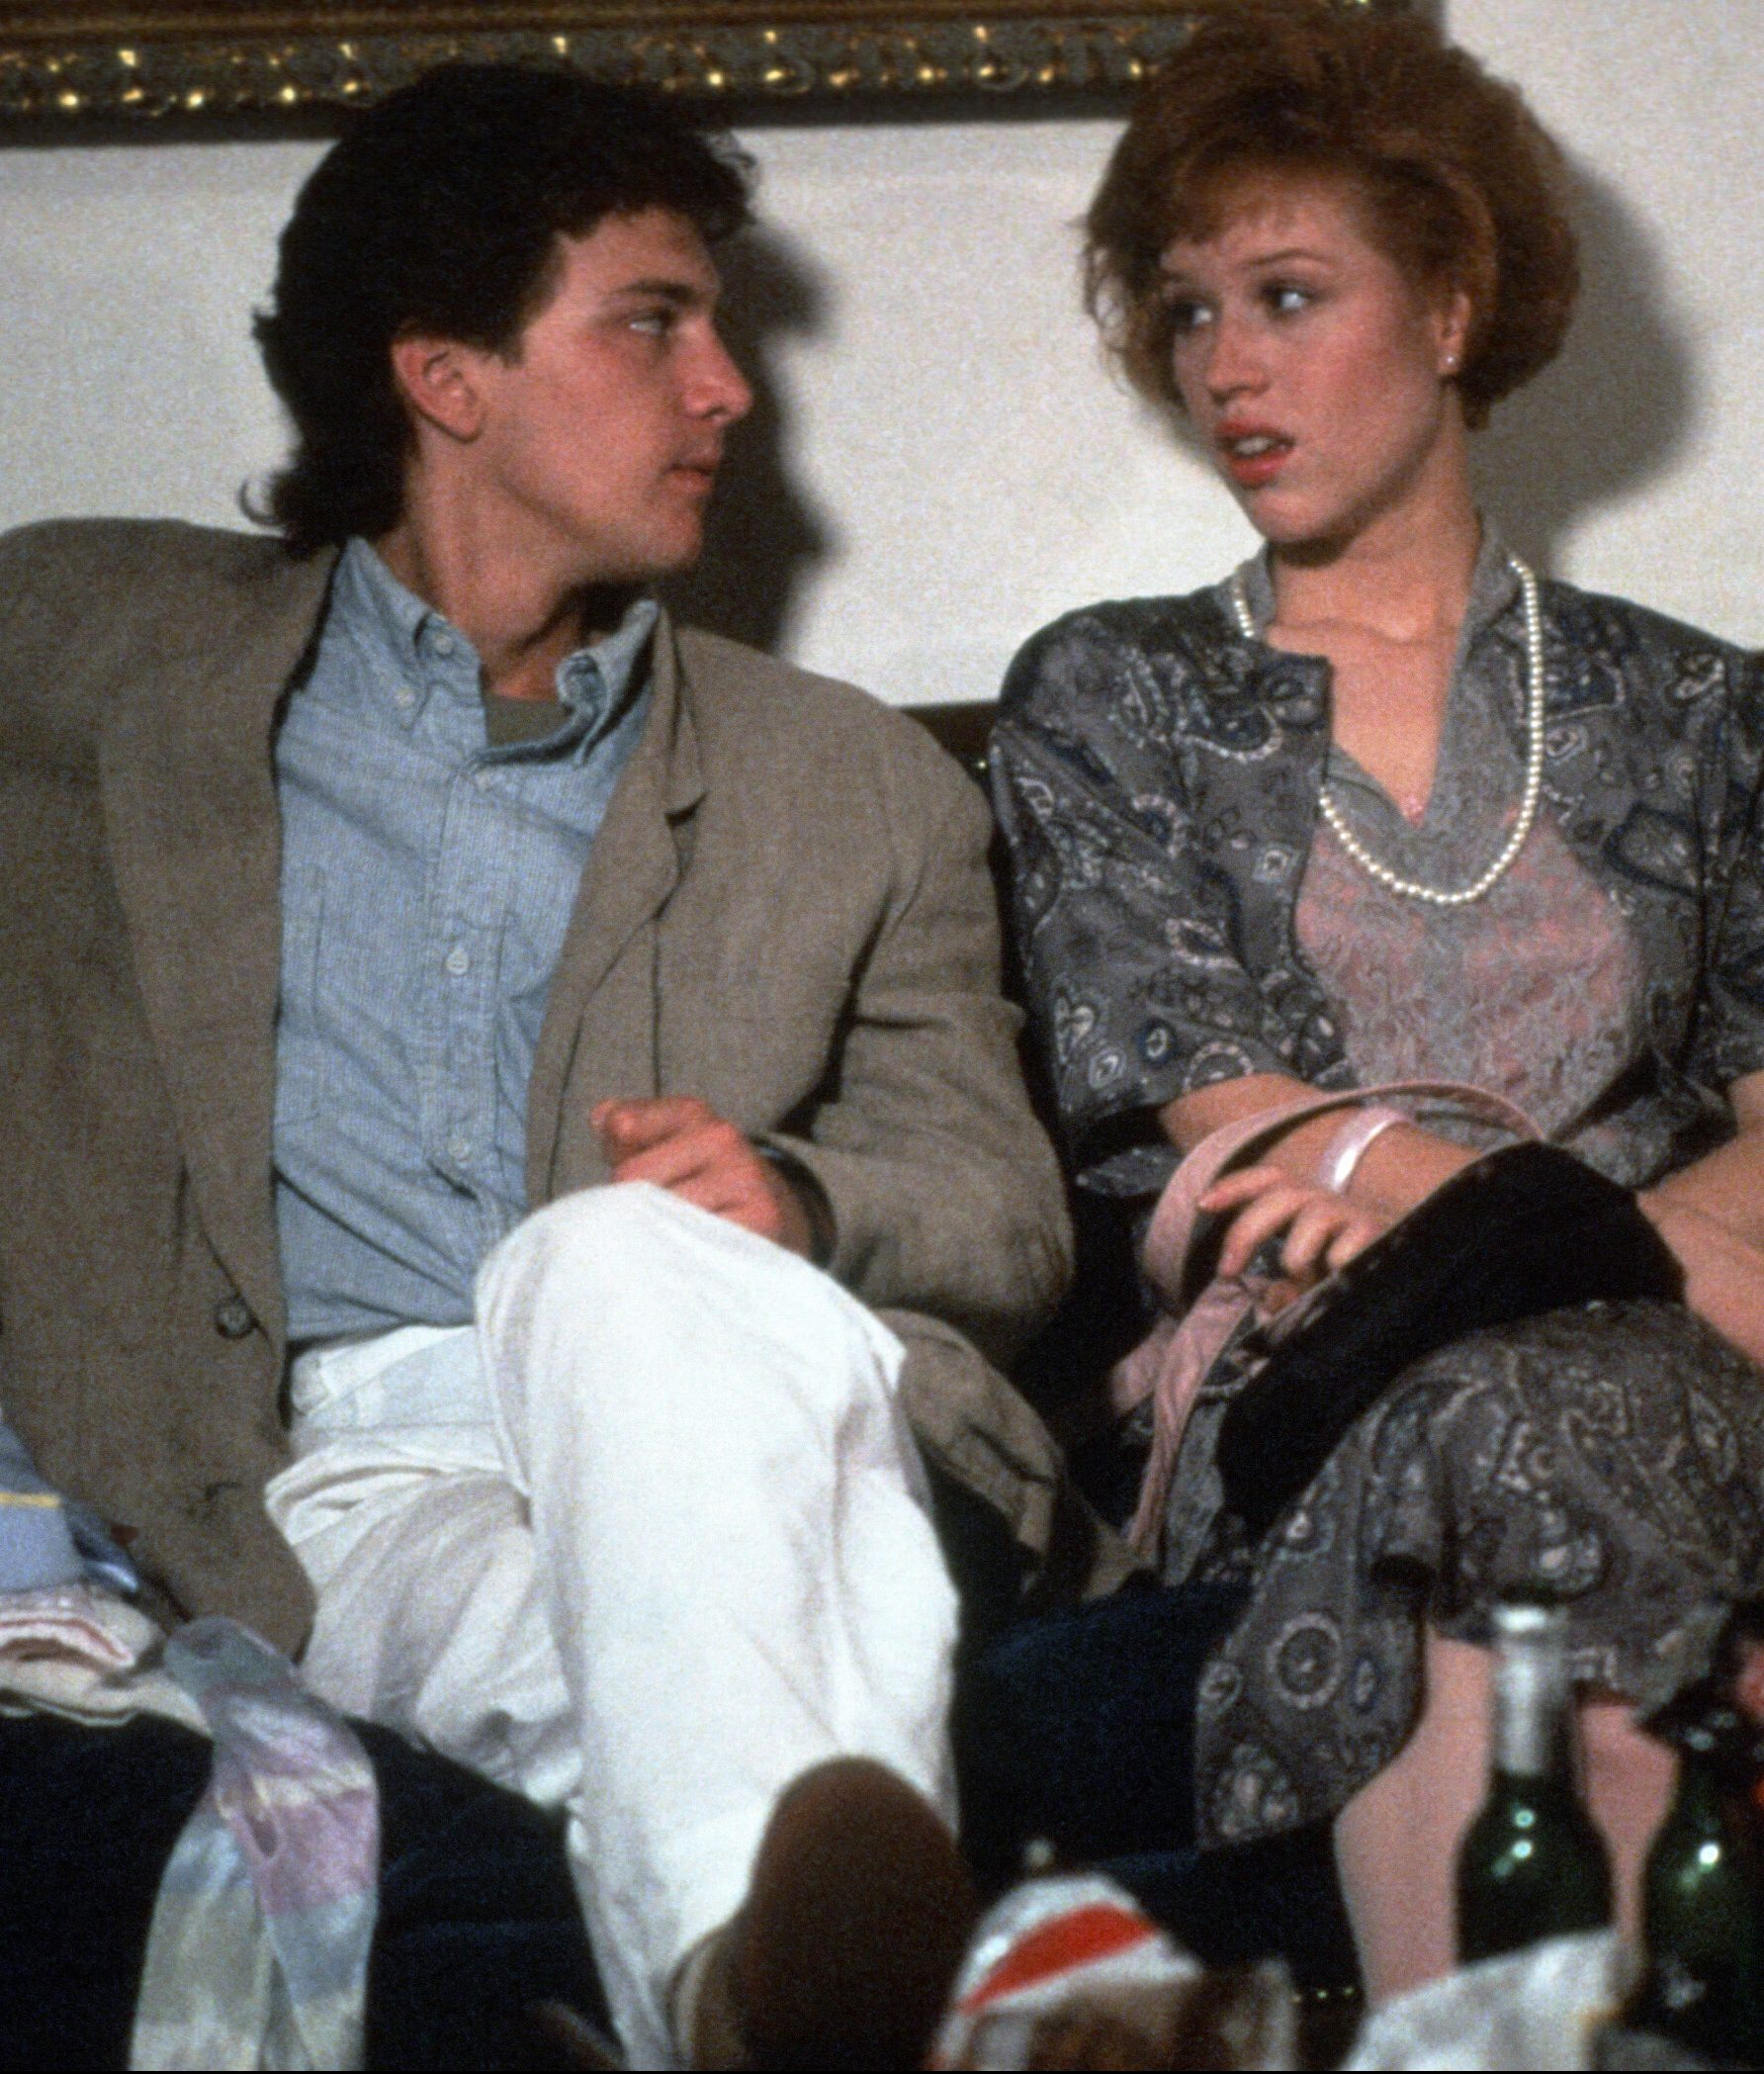 pretty 74 e1588682640891 20 Good-Looking Facts You Never Knew About Pretty In Pink